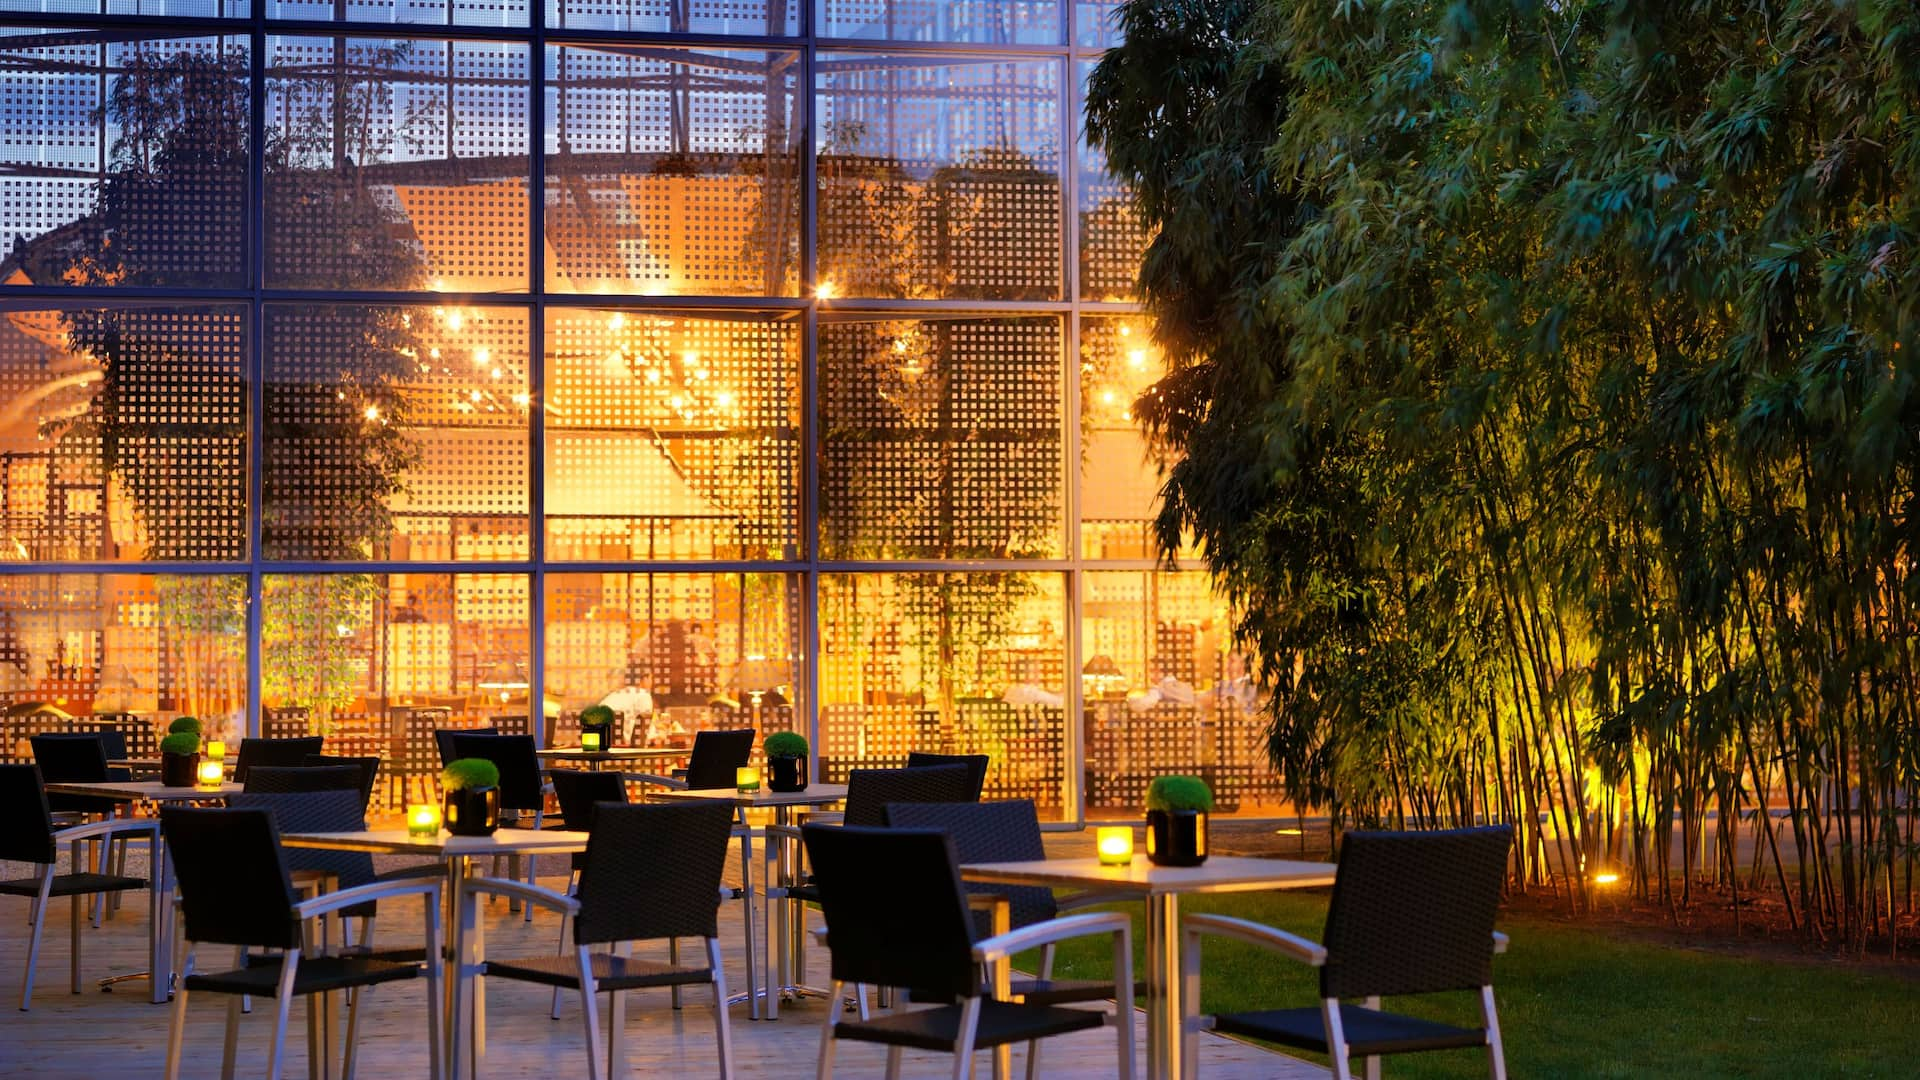 Terrace Night - Hotel Hyatt Regency Paris Charles de Gaulle​